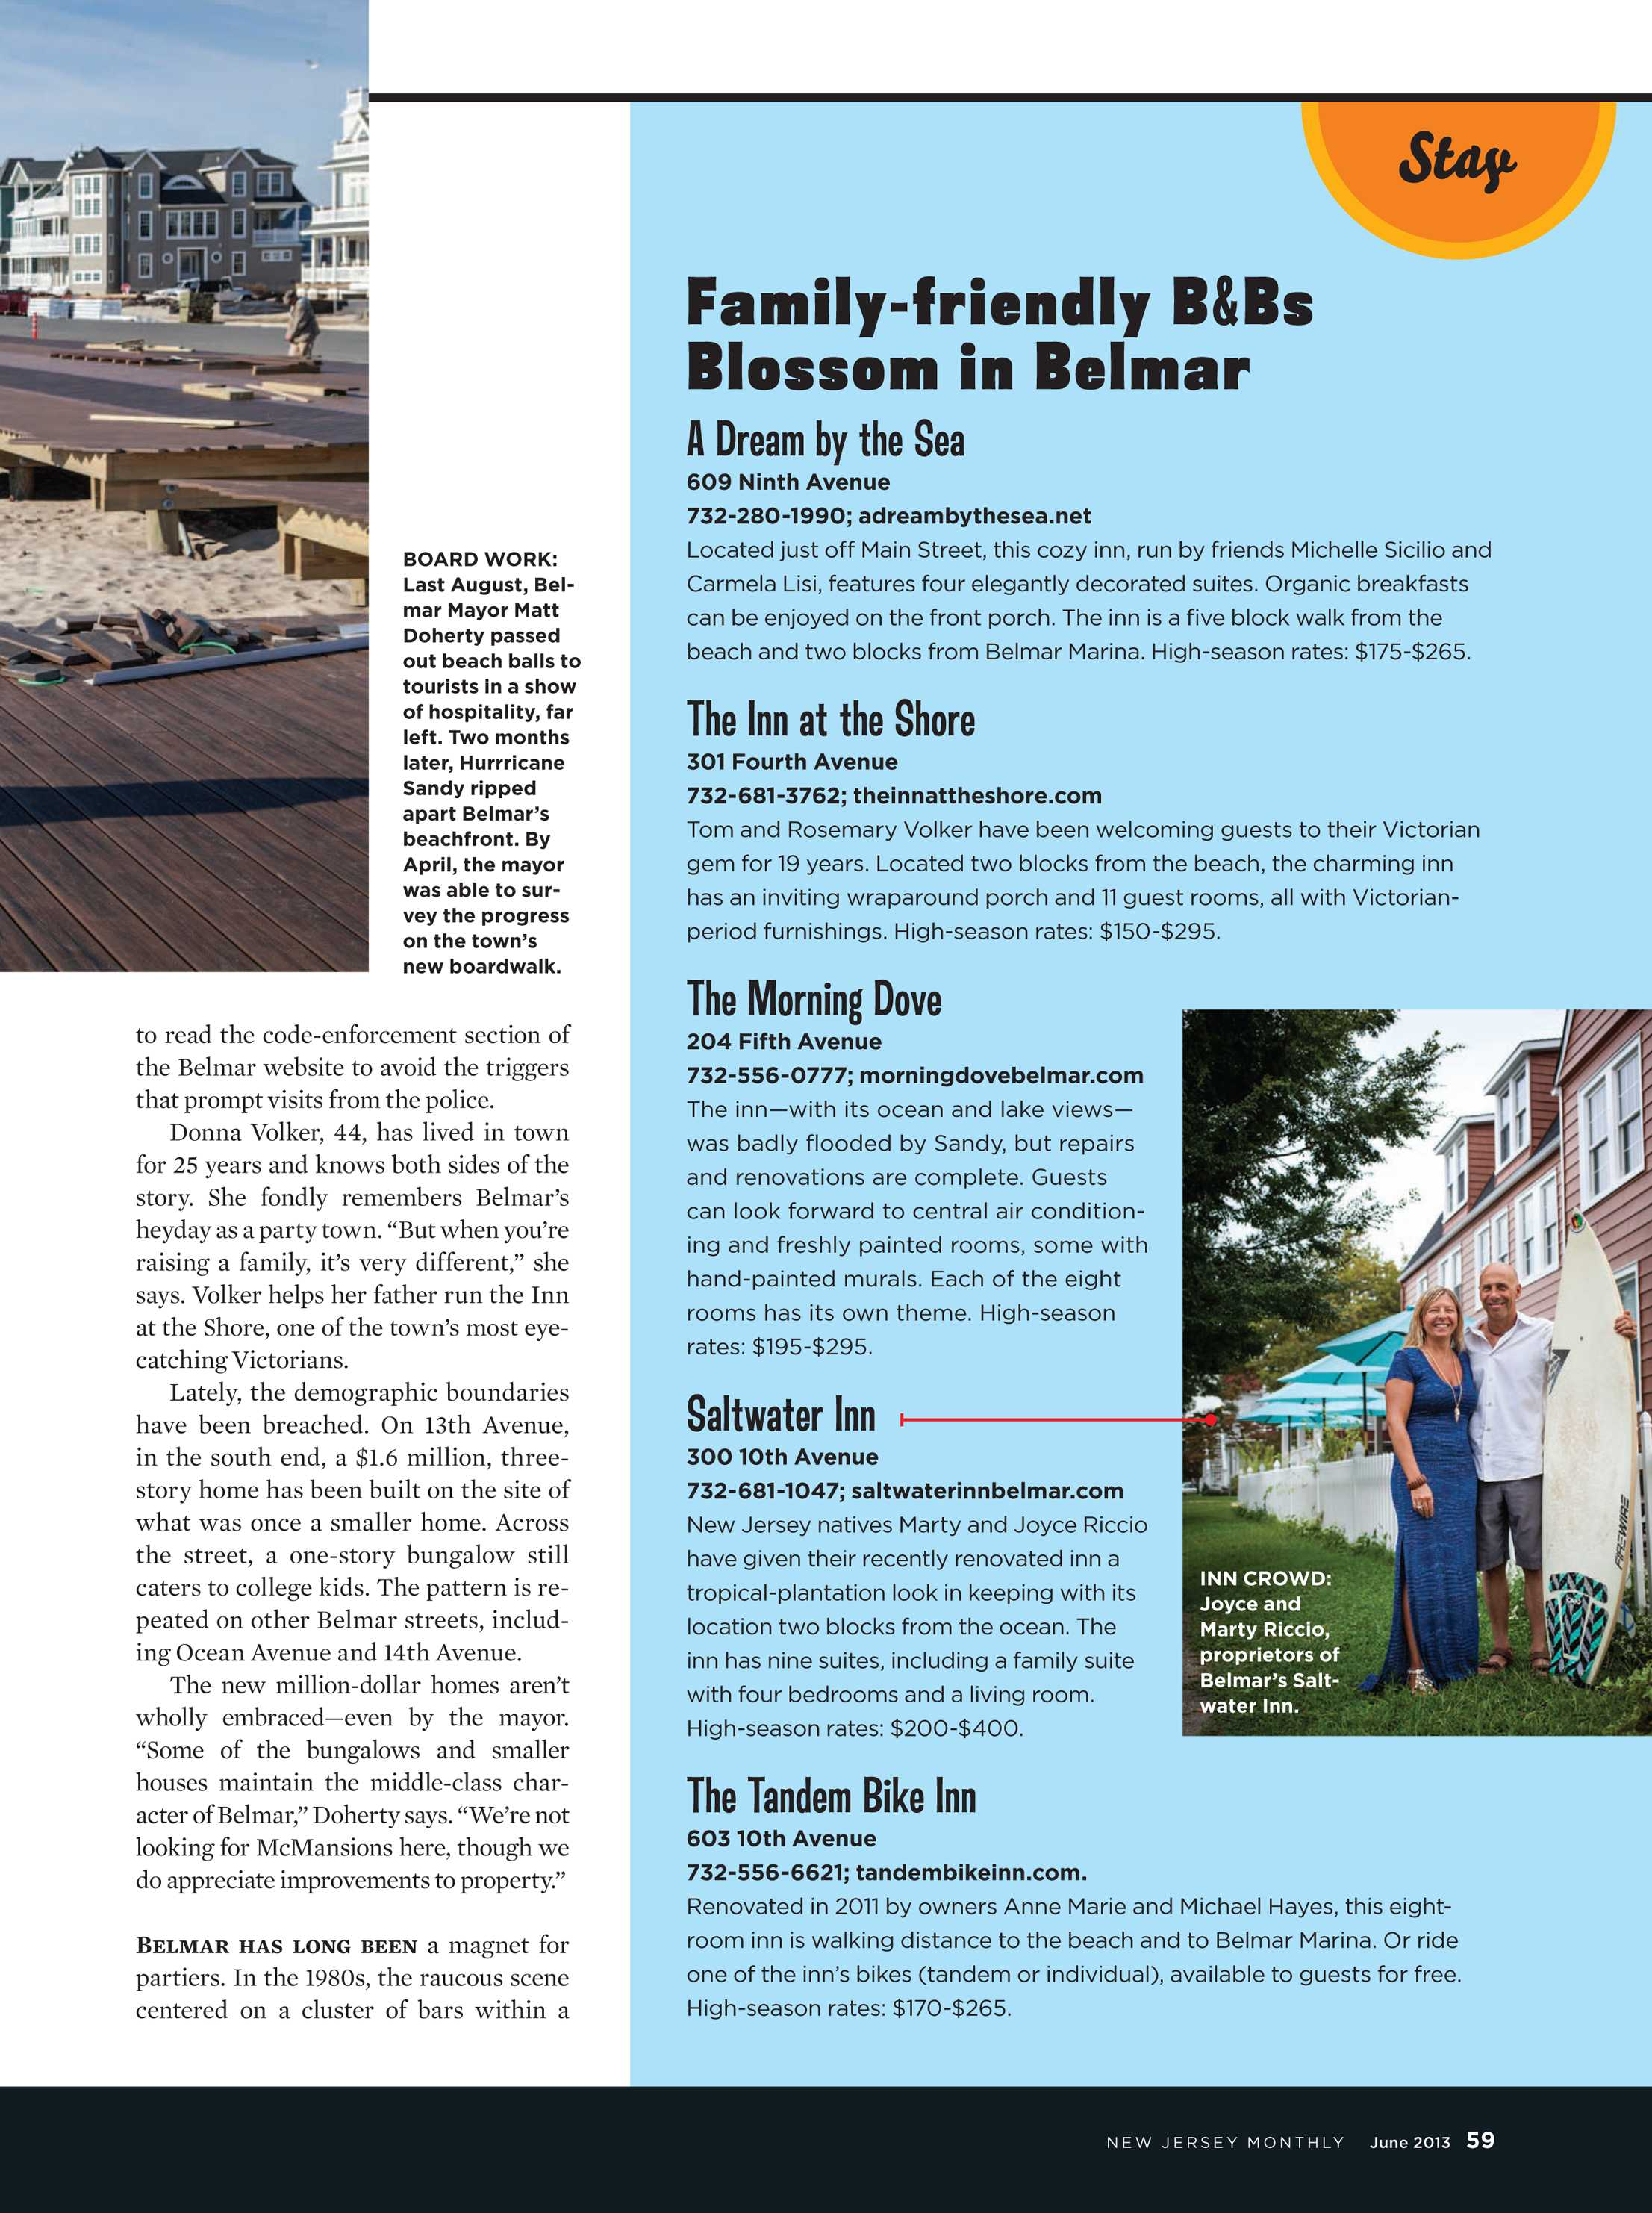 f96500964 NJ Monthly - June 2013 - page 59